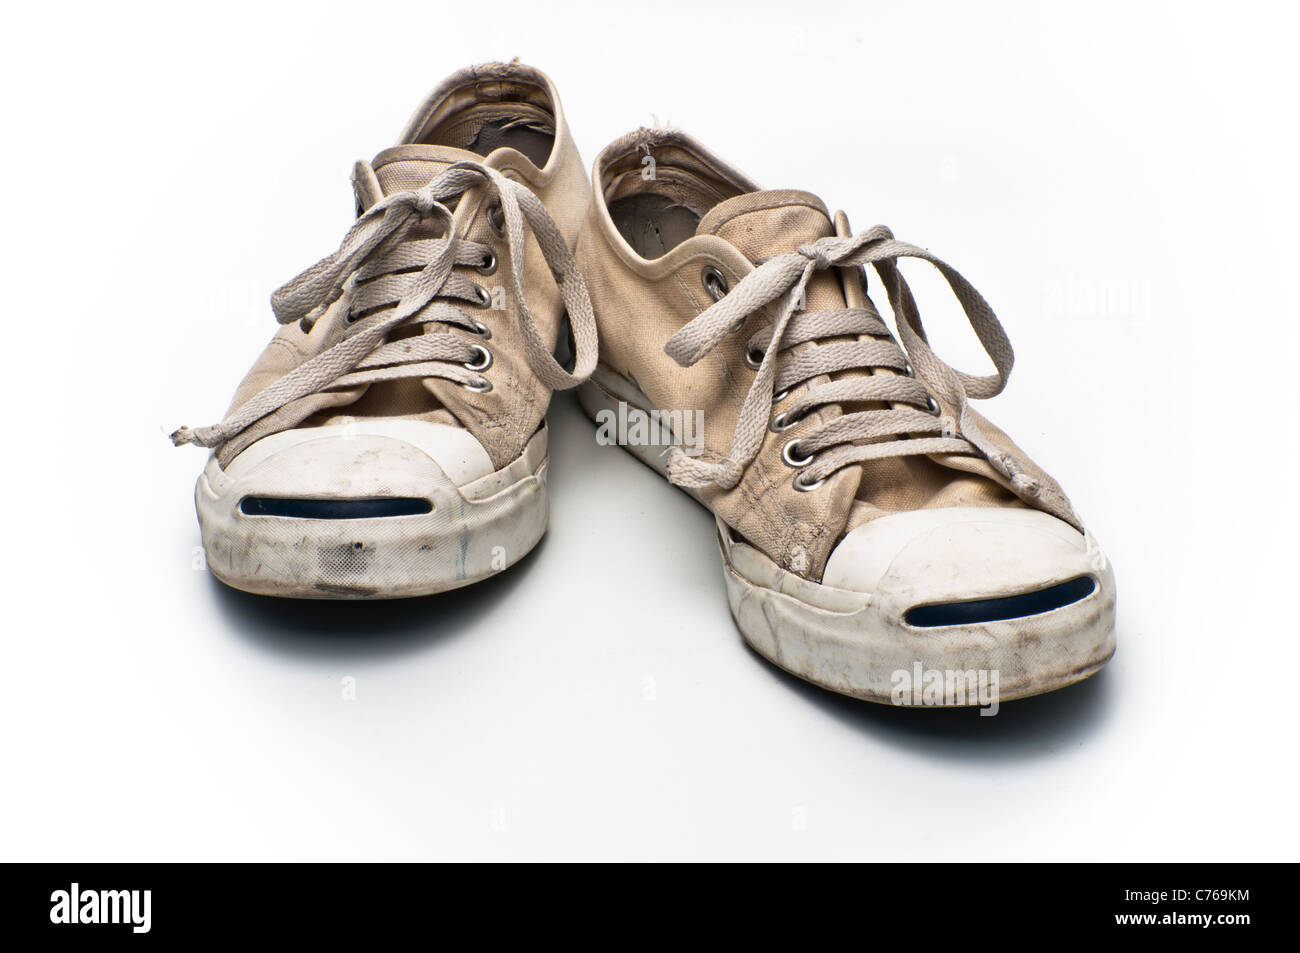 Converse Jack Purcell tennis shoes on a